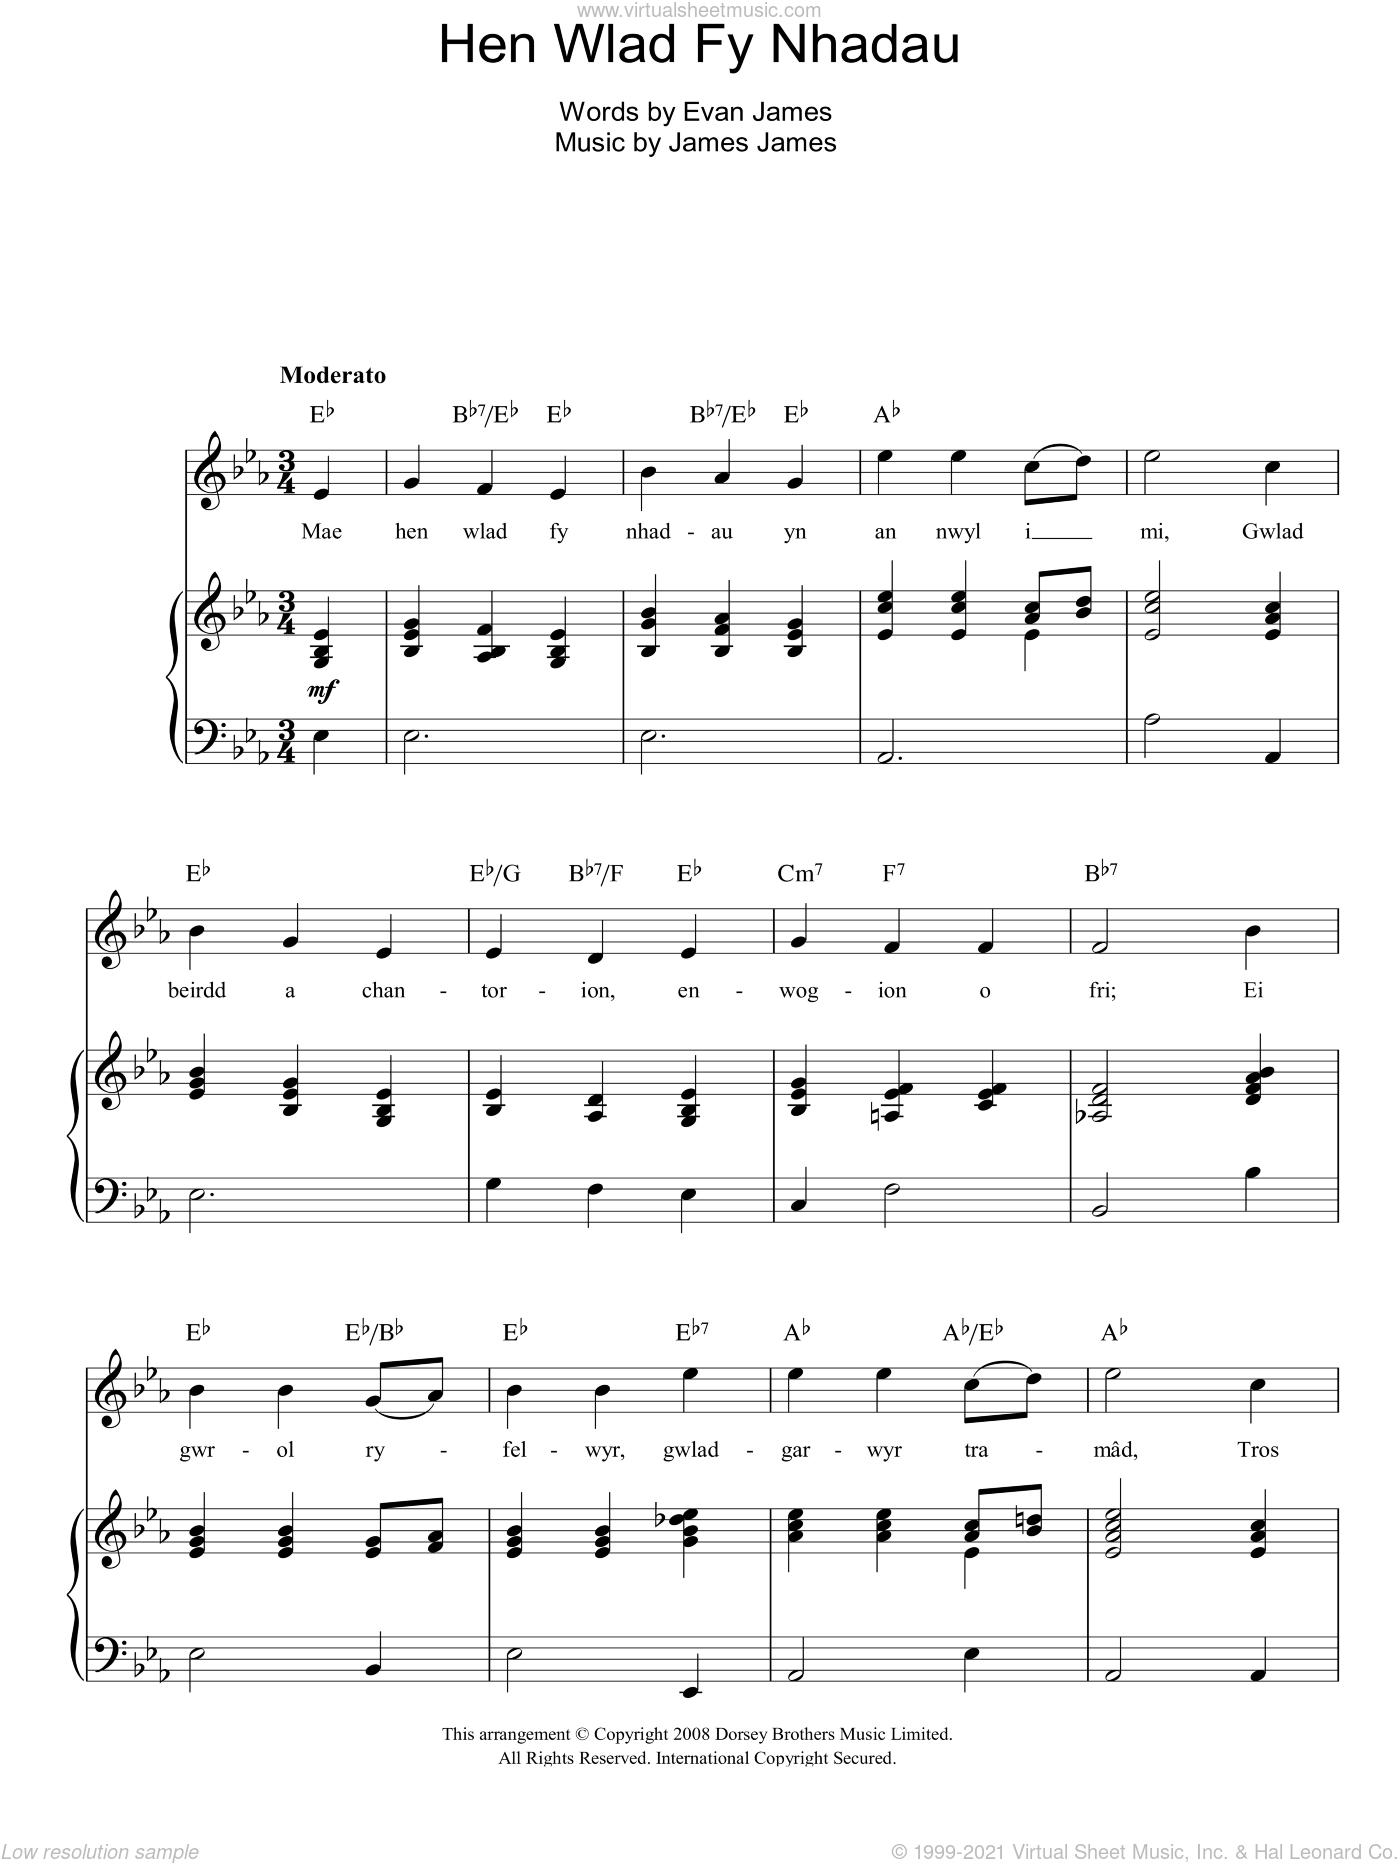 Hen Wlad Fy Nhadau (Unofficial Welsh National Anthem) sheet music for voice, piano or guitar by James James